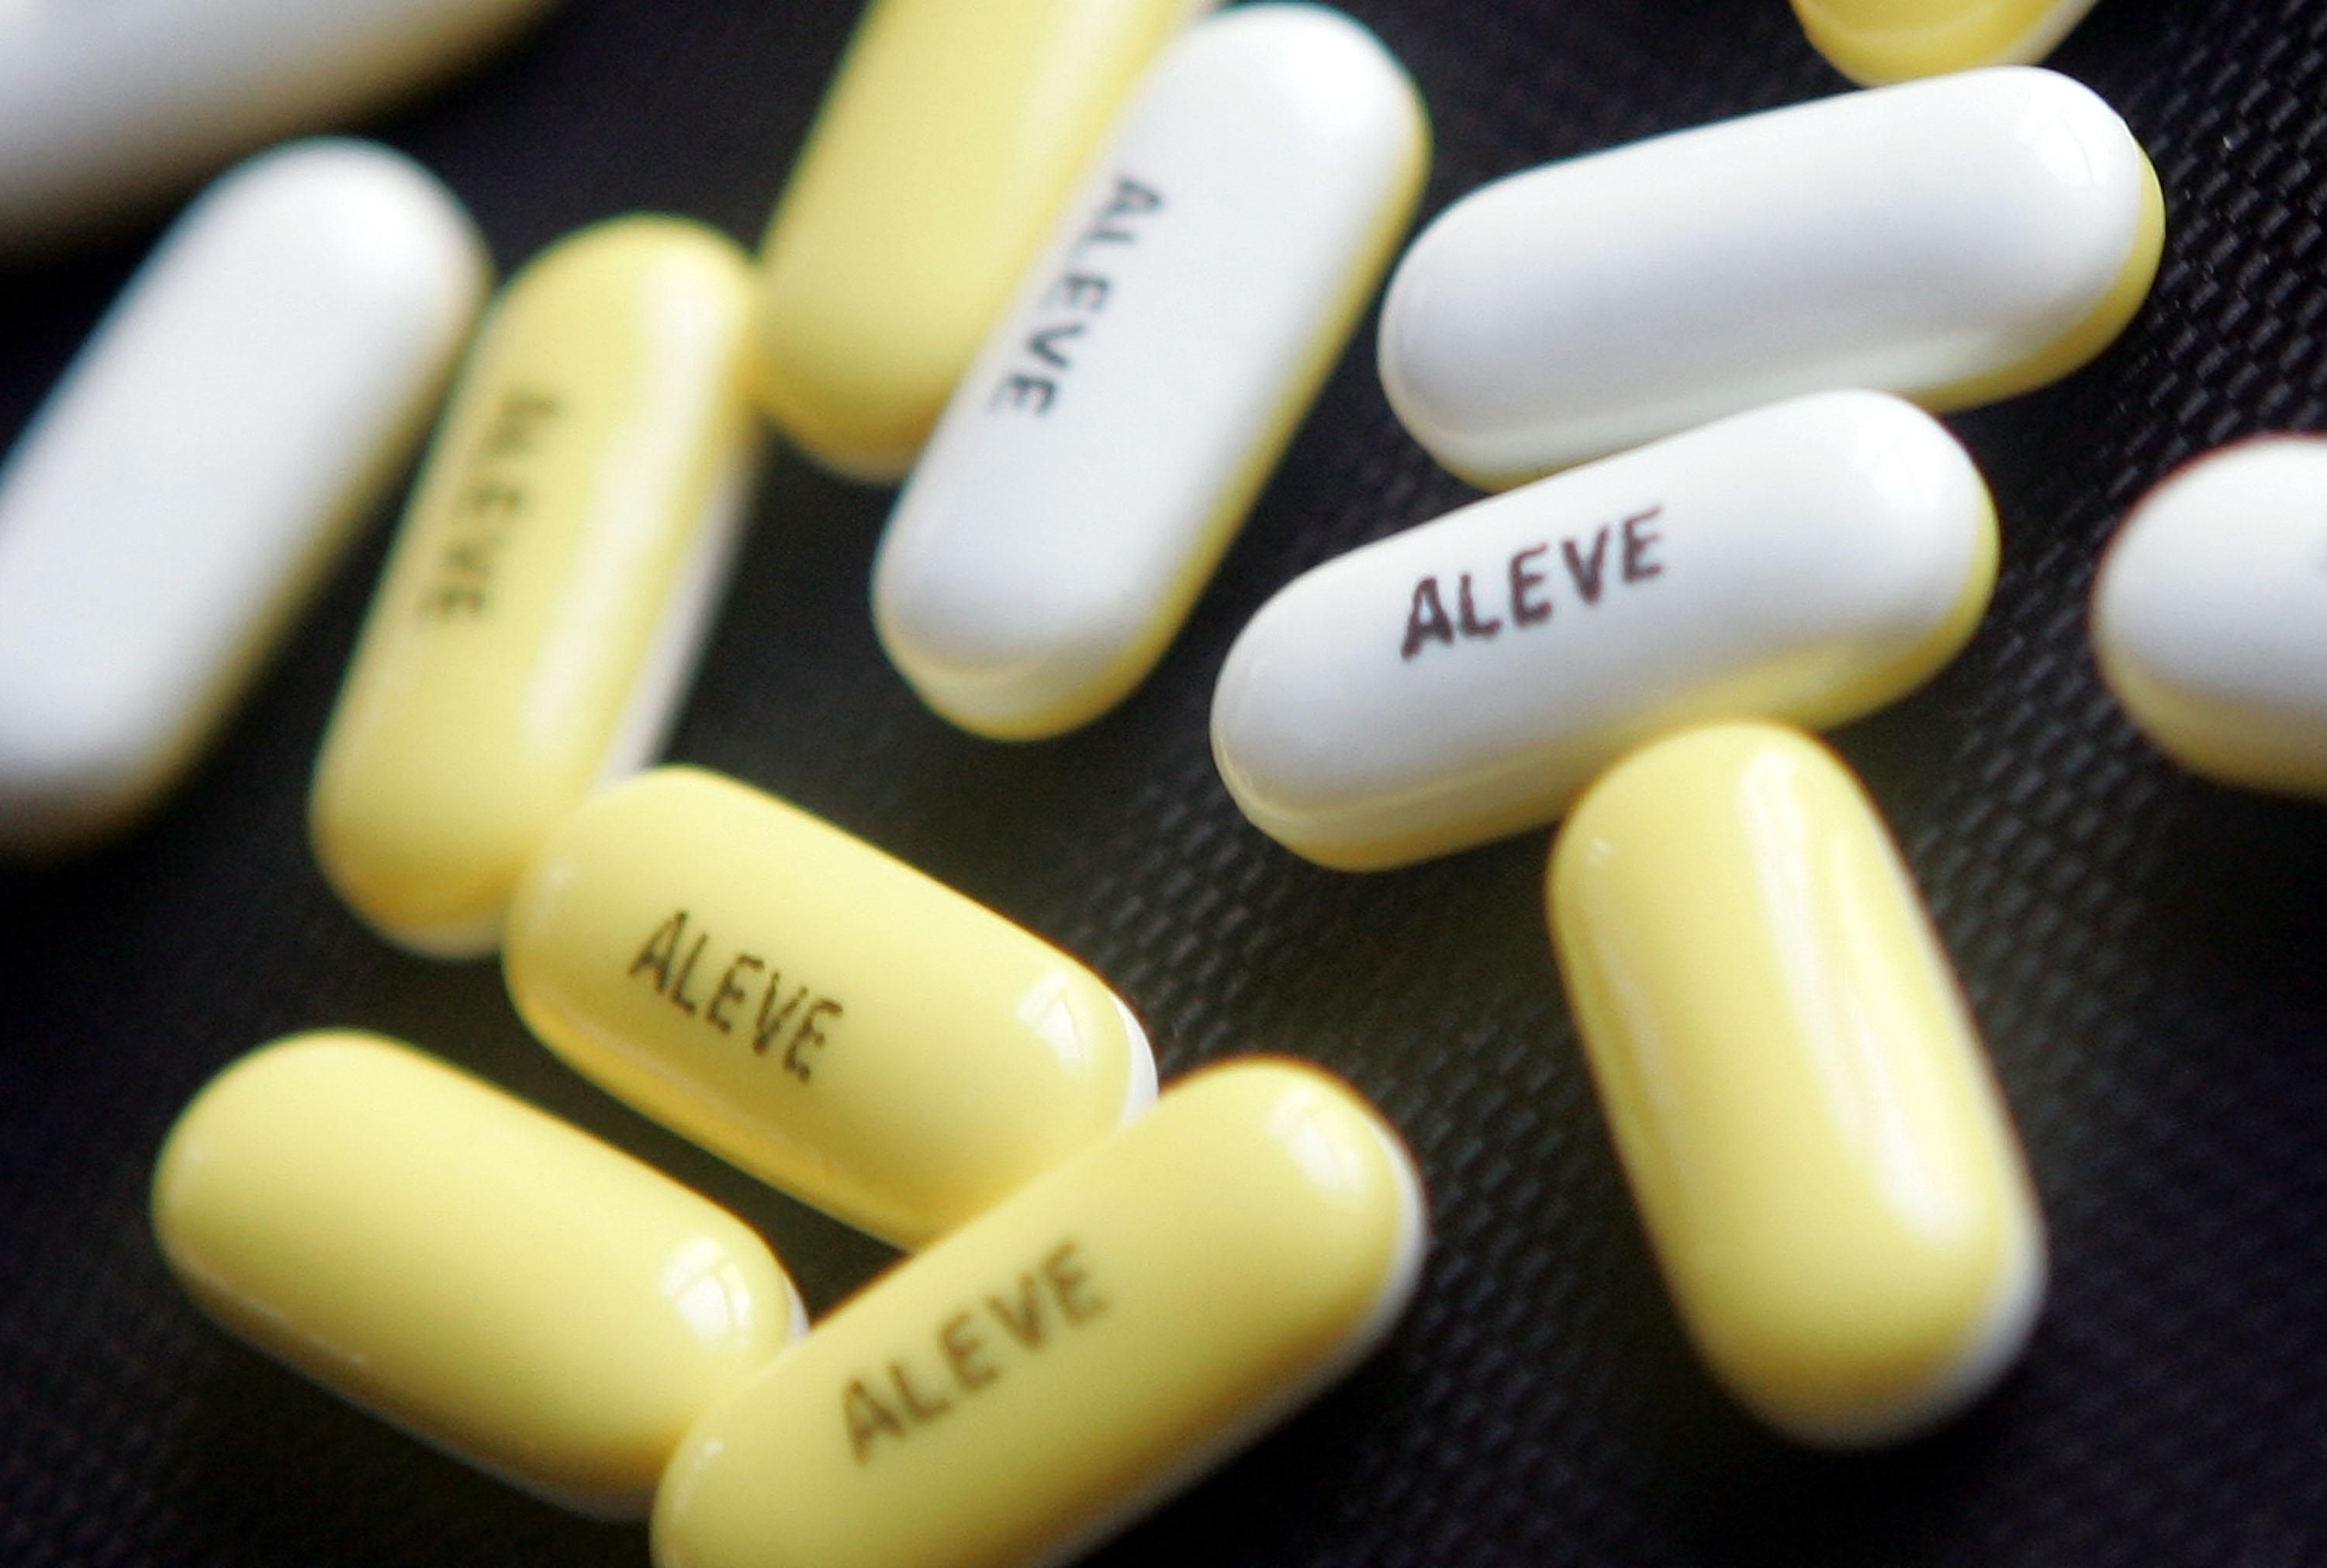 how often can you take aleve? correct dosage information